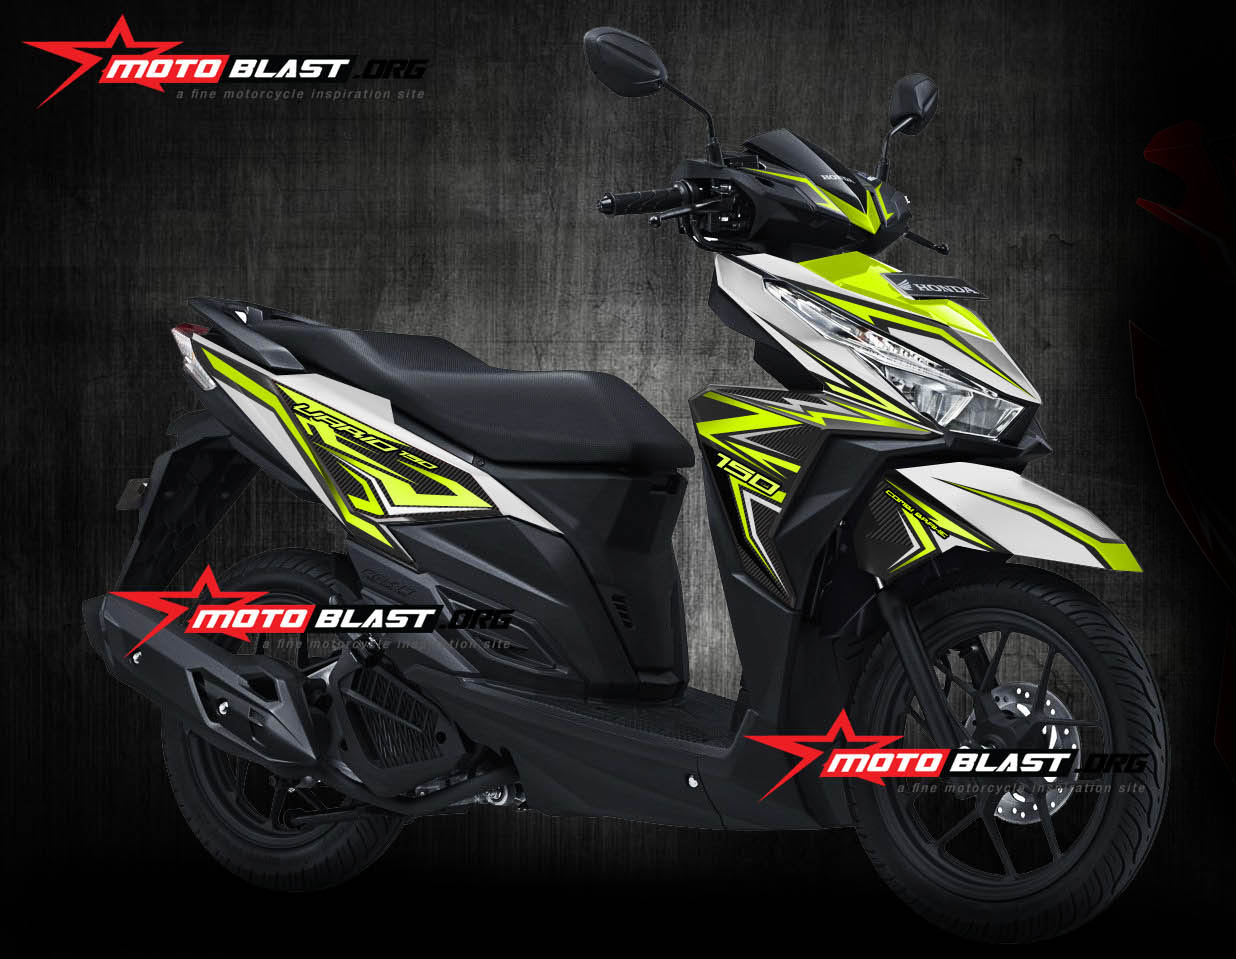 Modifikasi Scoklet Vario 150